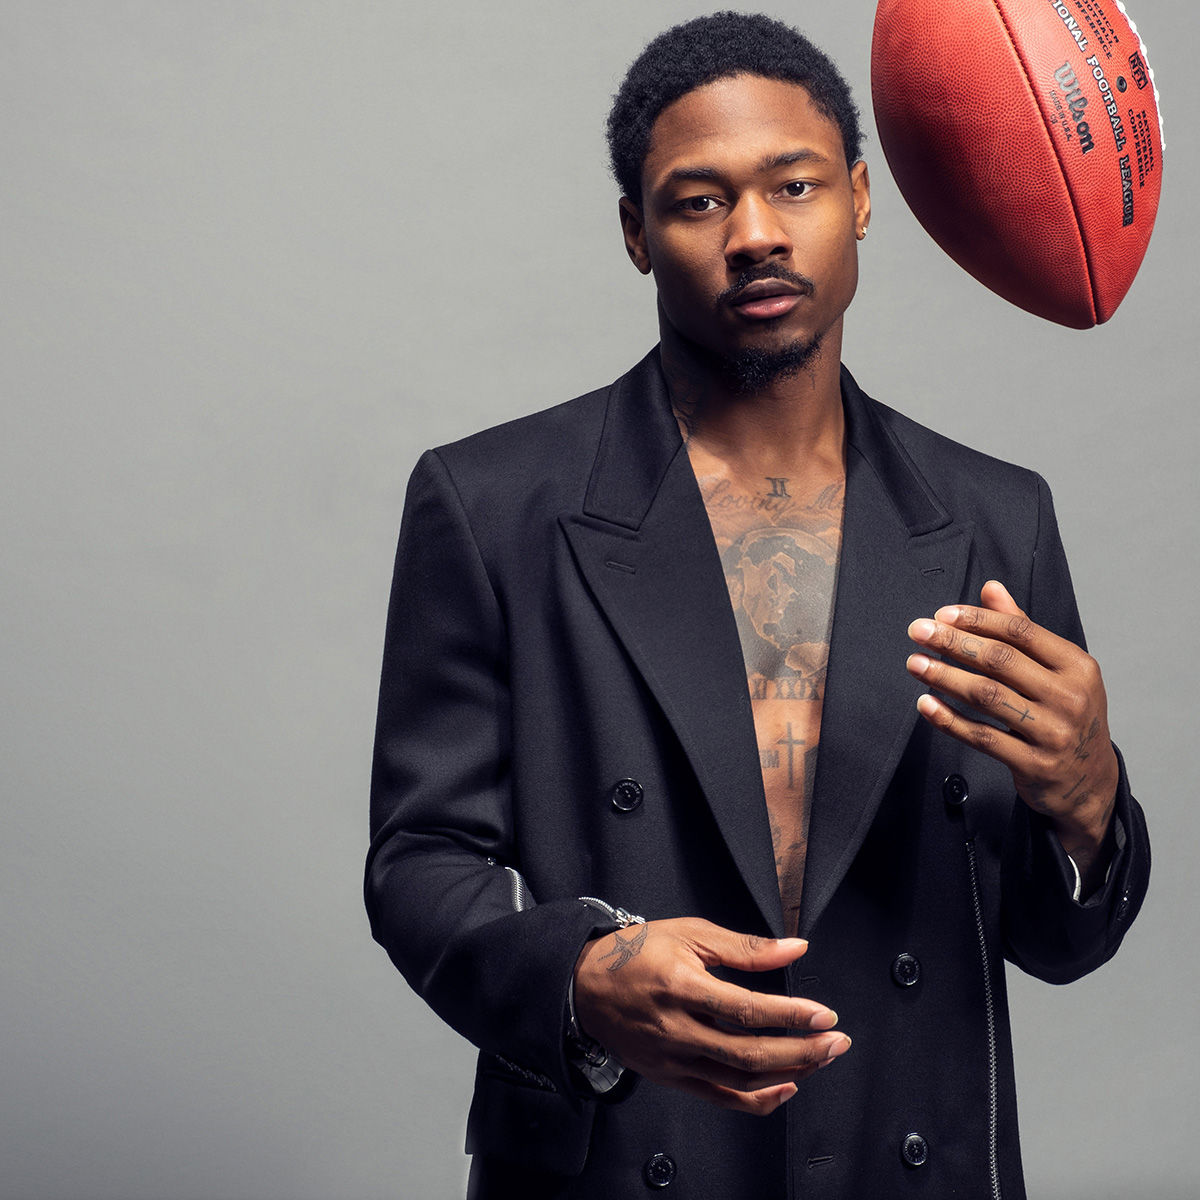 Stefon Diggs, donning a blazer, flips a football in the air.